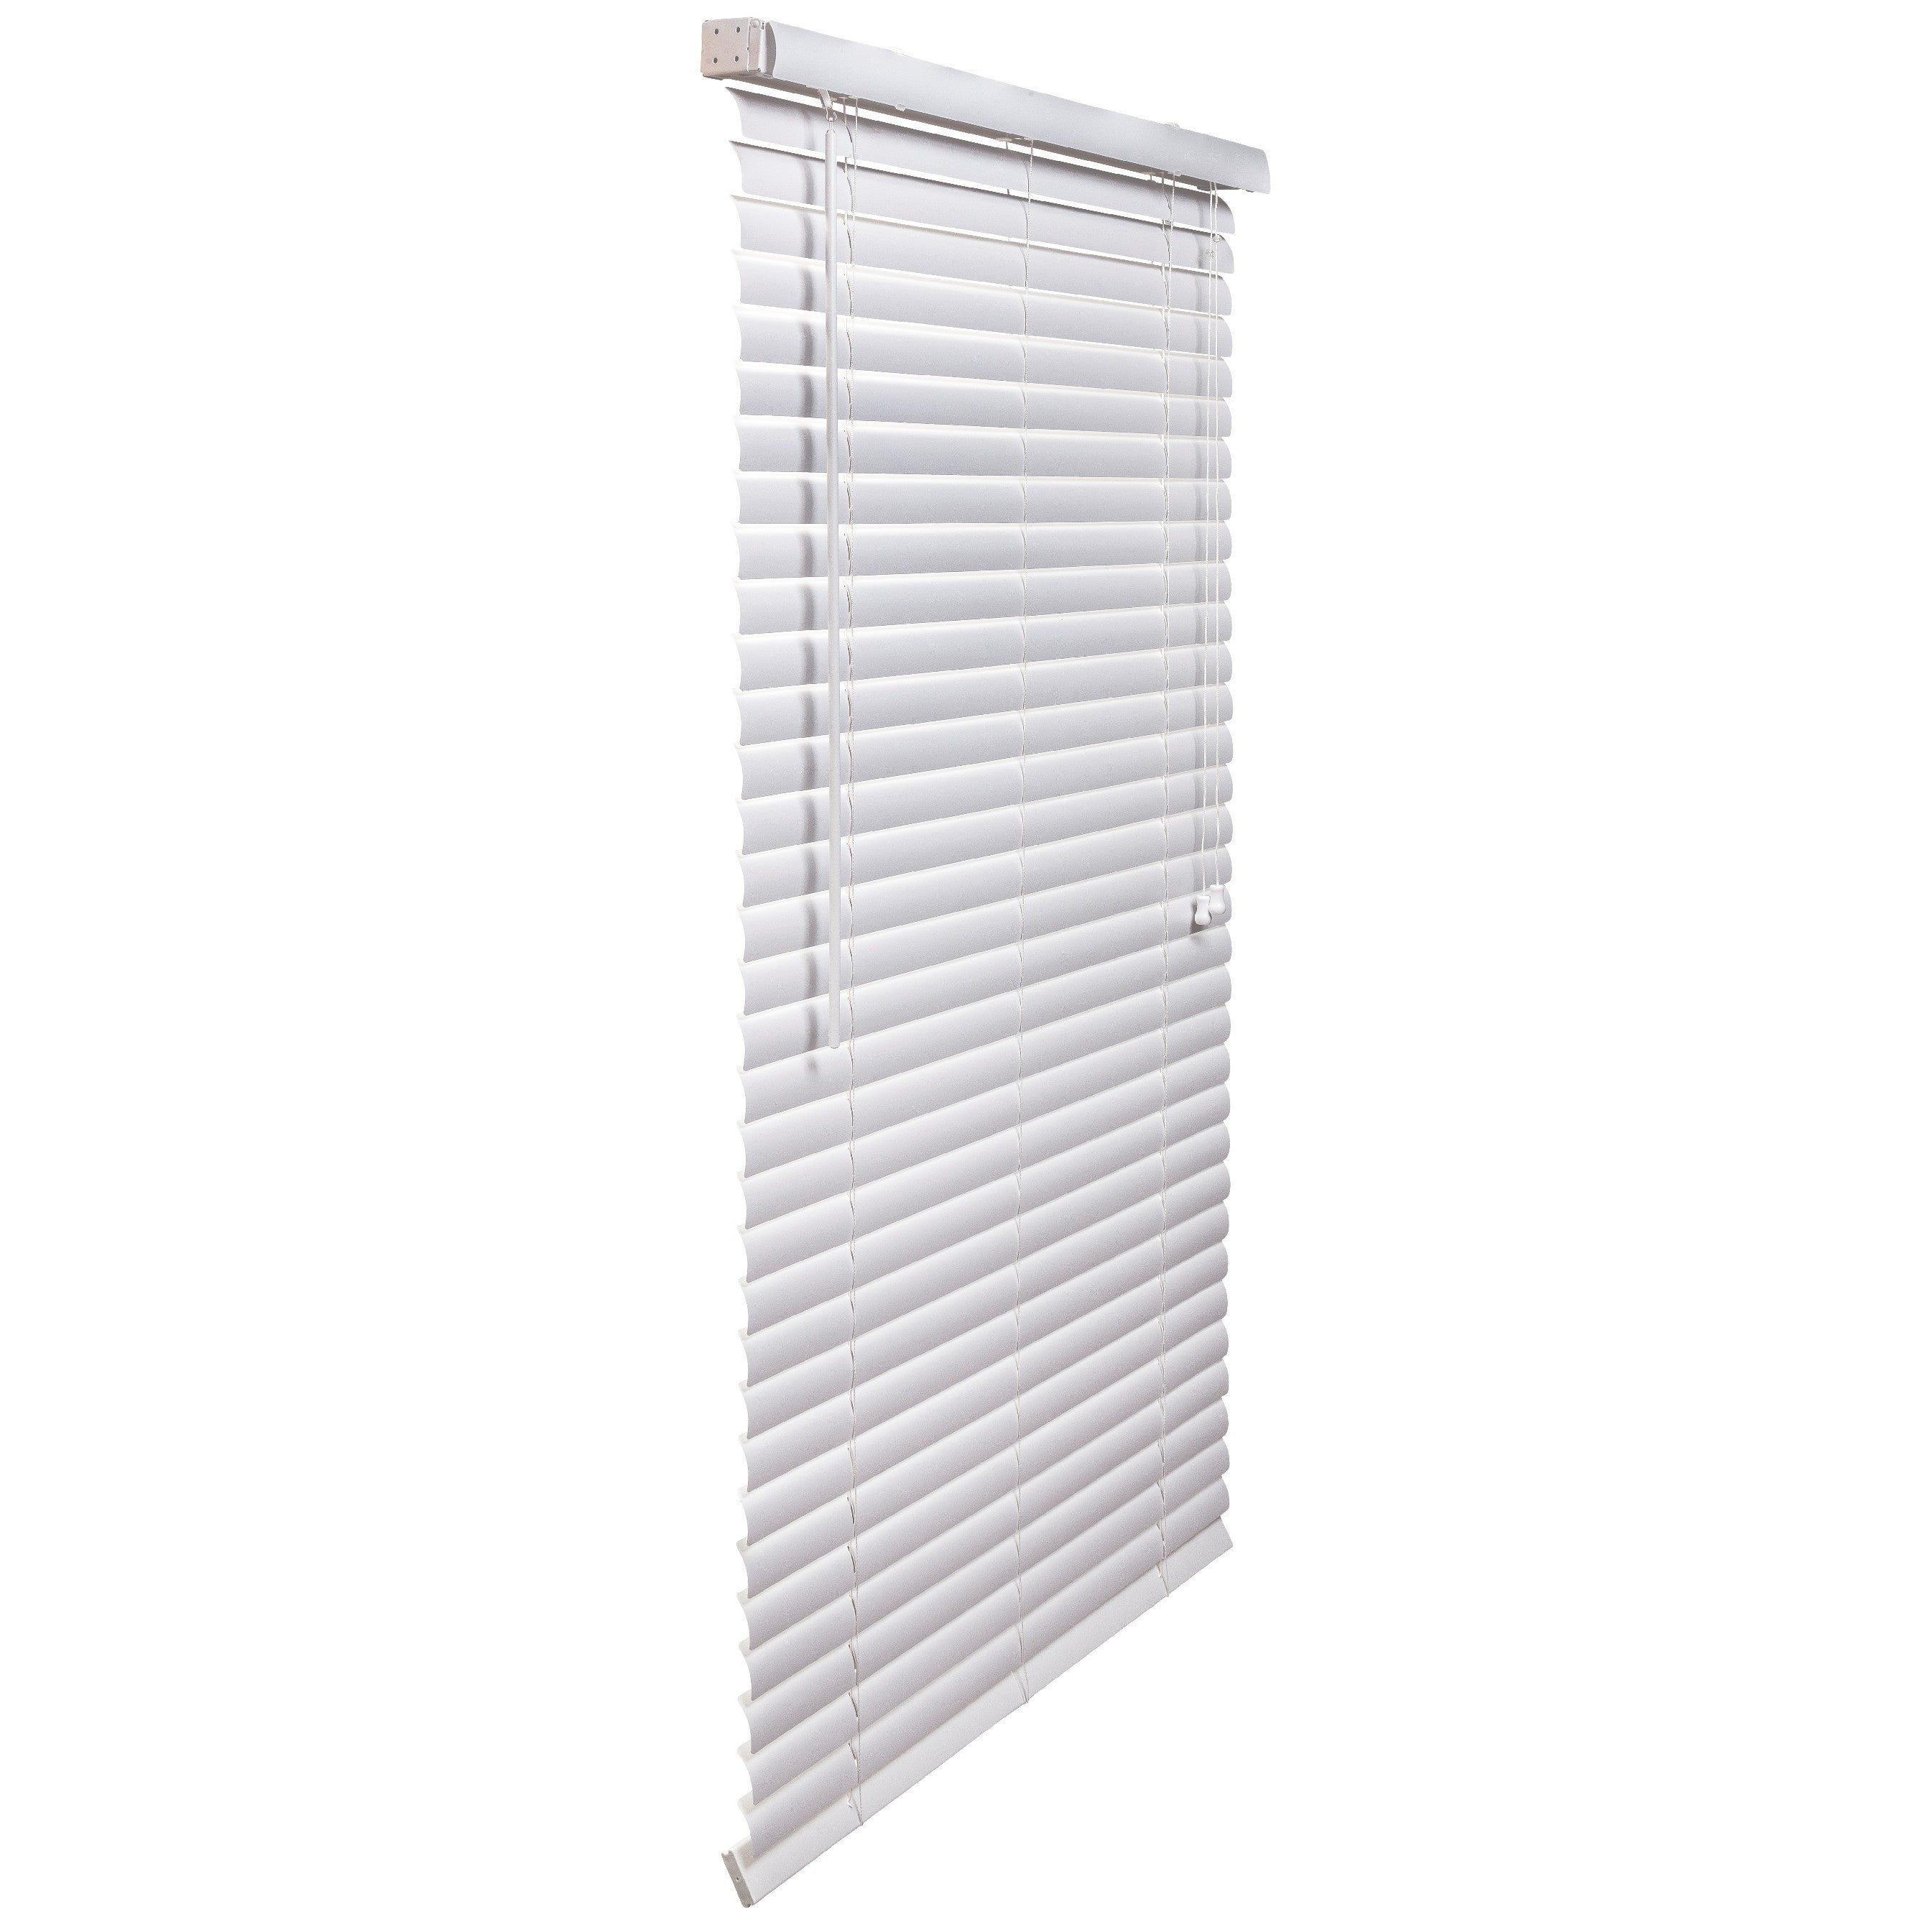 Lotus White PVC/Vinyl 2-inch Blinds (White, 48 Inches Wid...